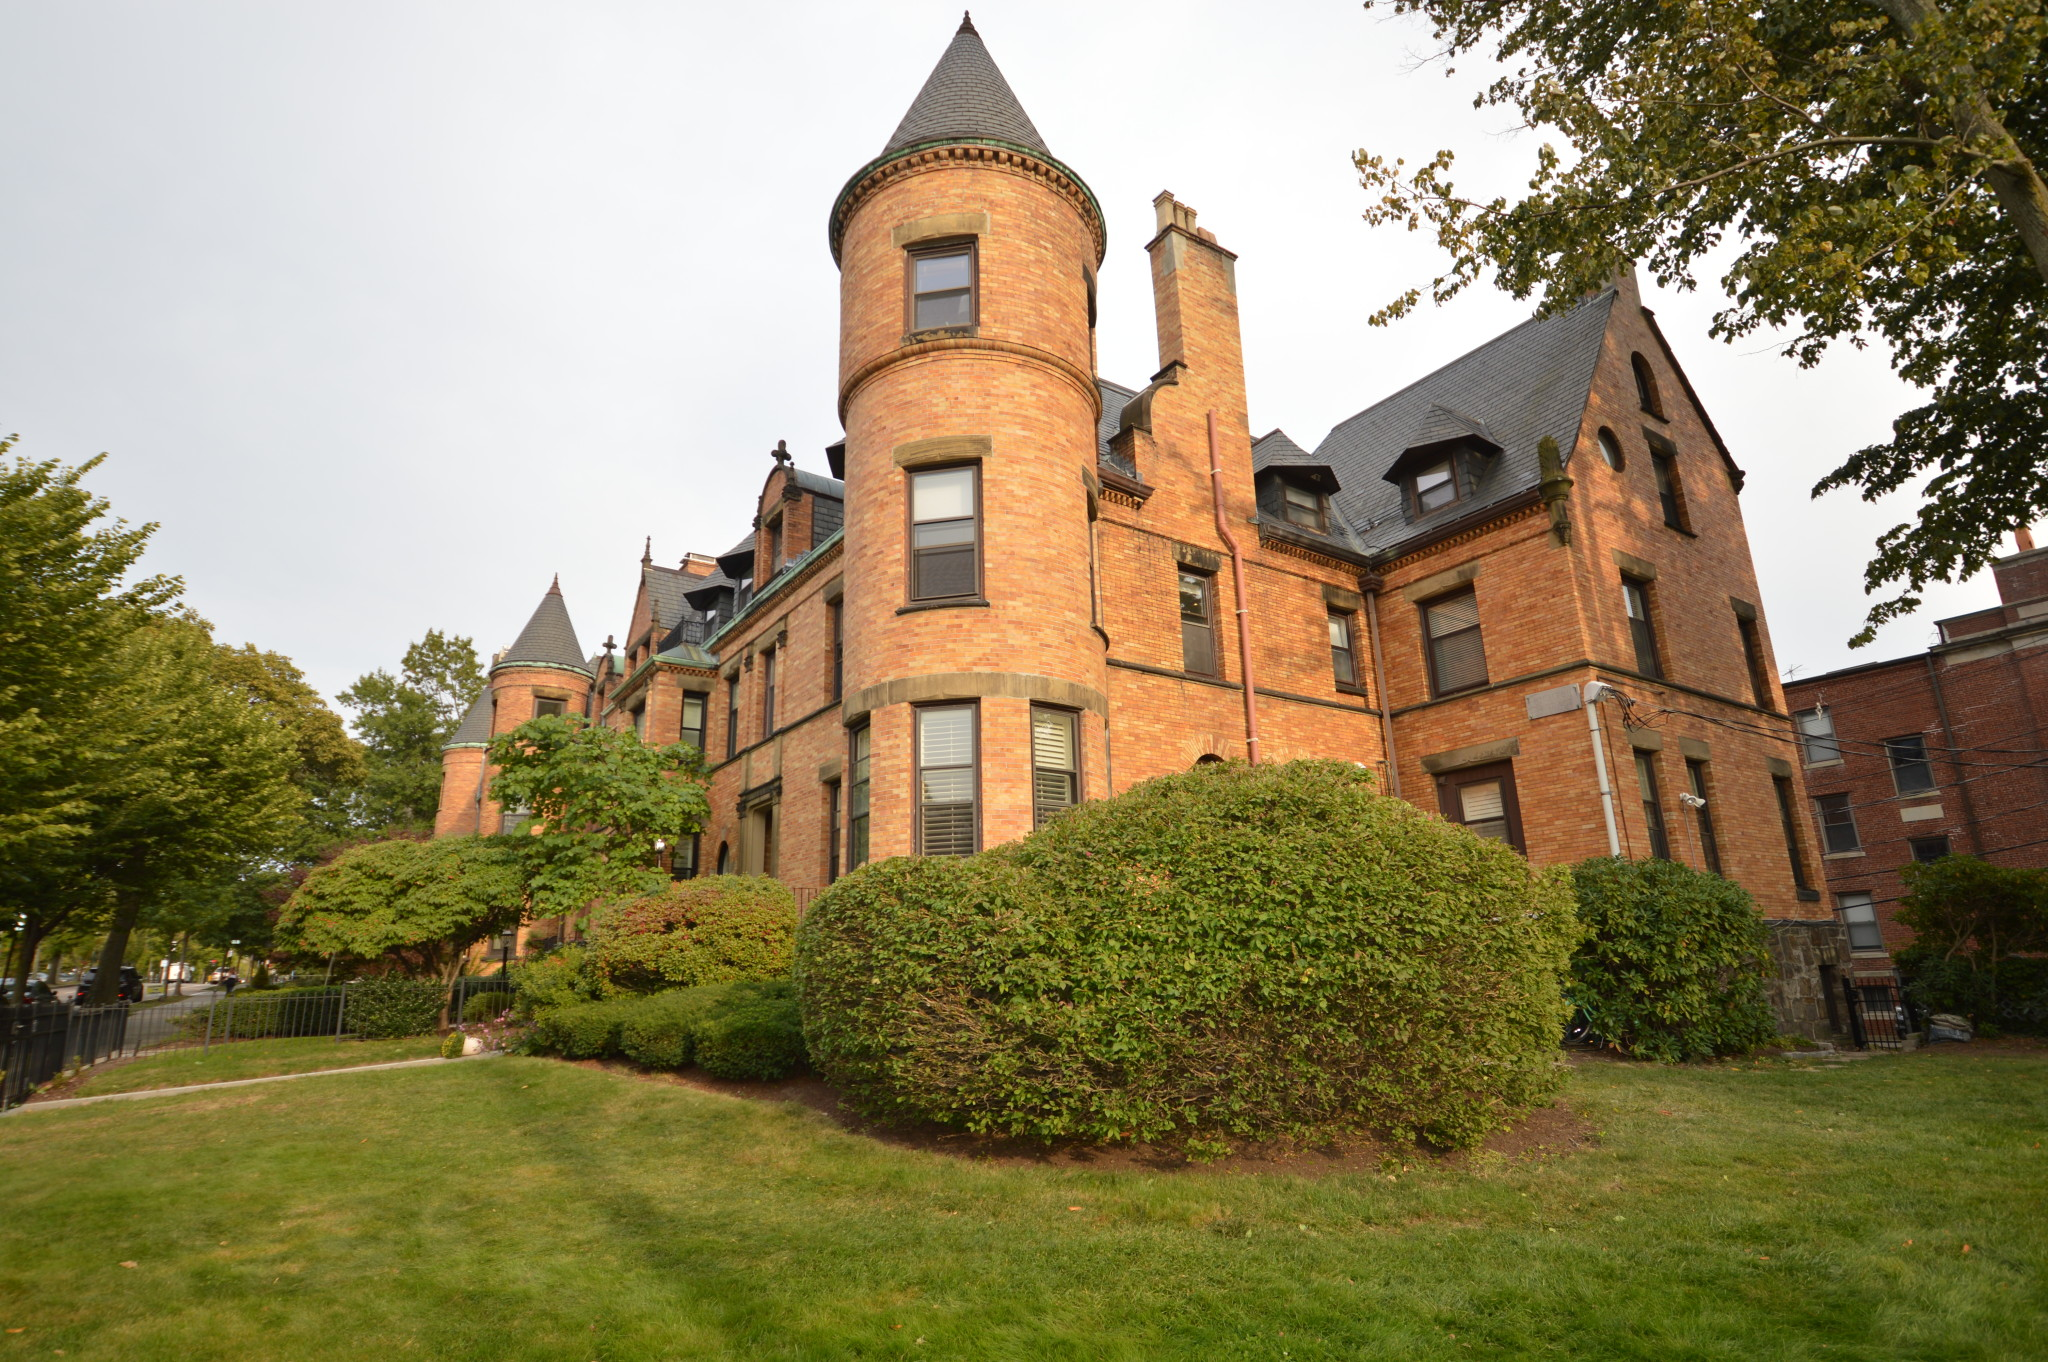 1 Bed, 1 Bath apartment in Brookline for $2,150